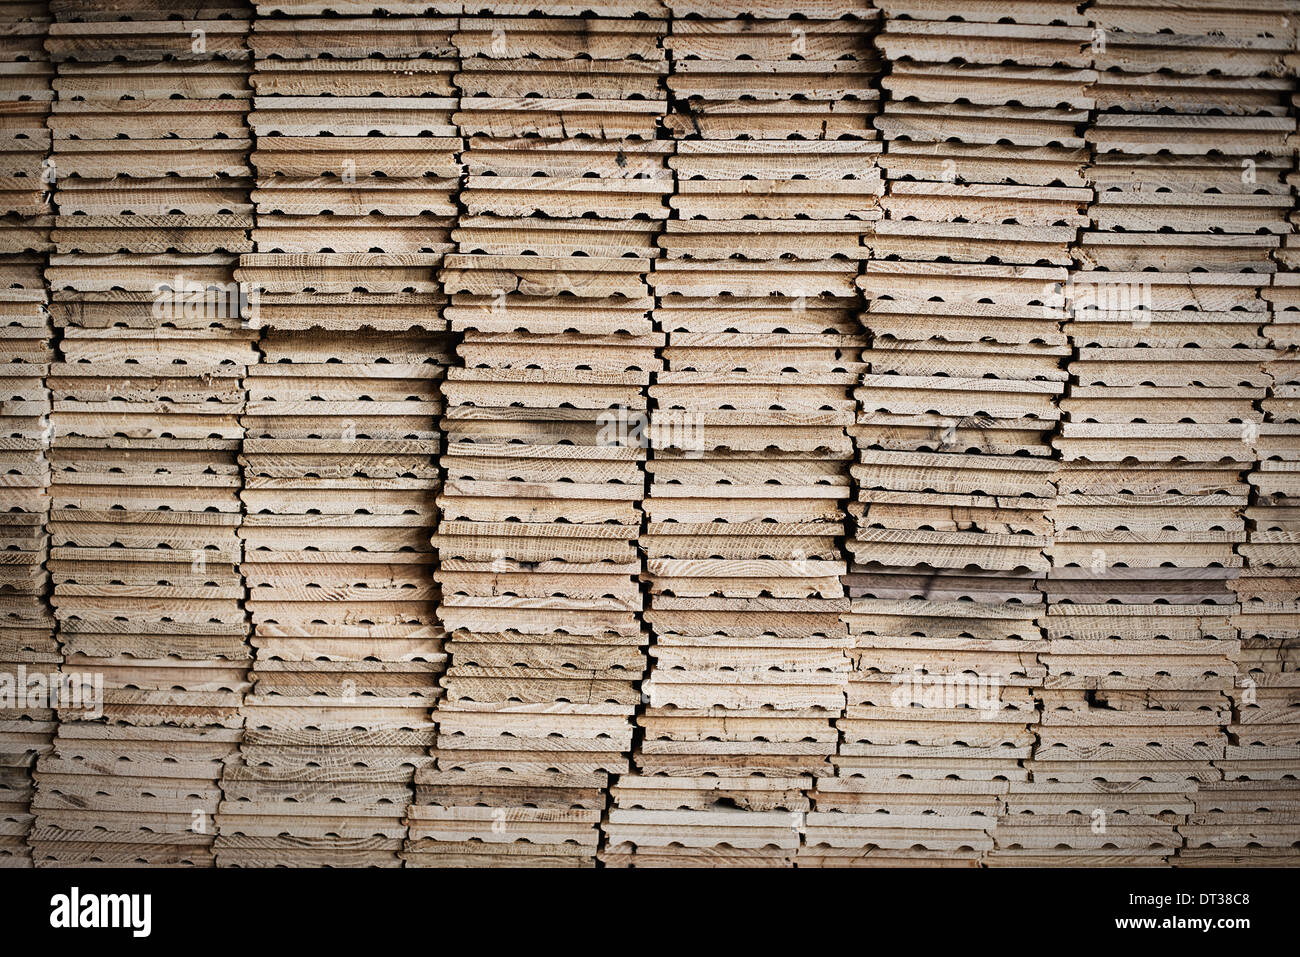 A reclaimed lumber workshop. Stacks of reclaimed, cleaned up planks of wood for re-use. - Stock Image